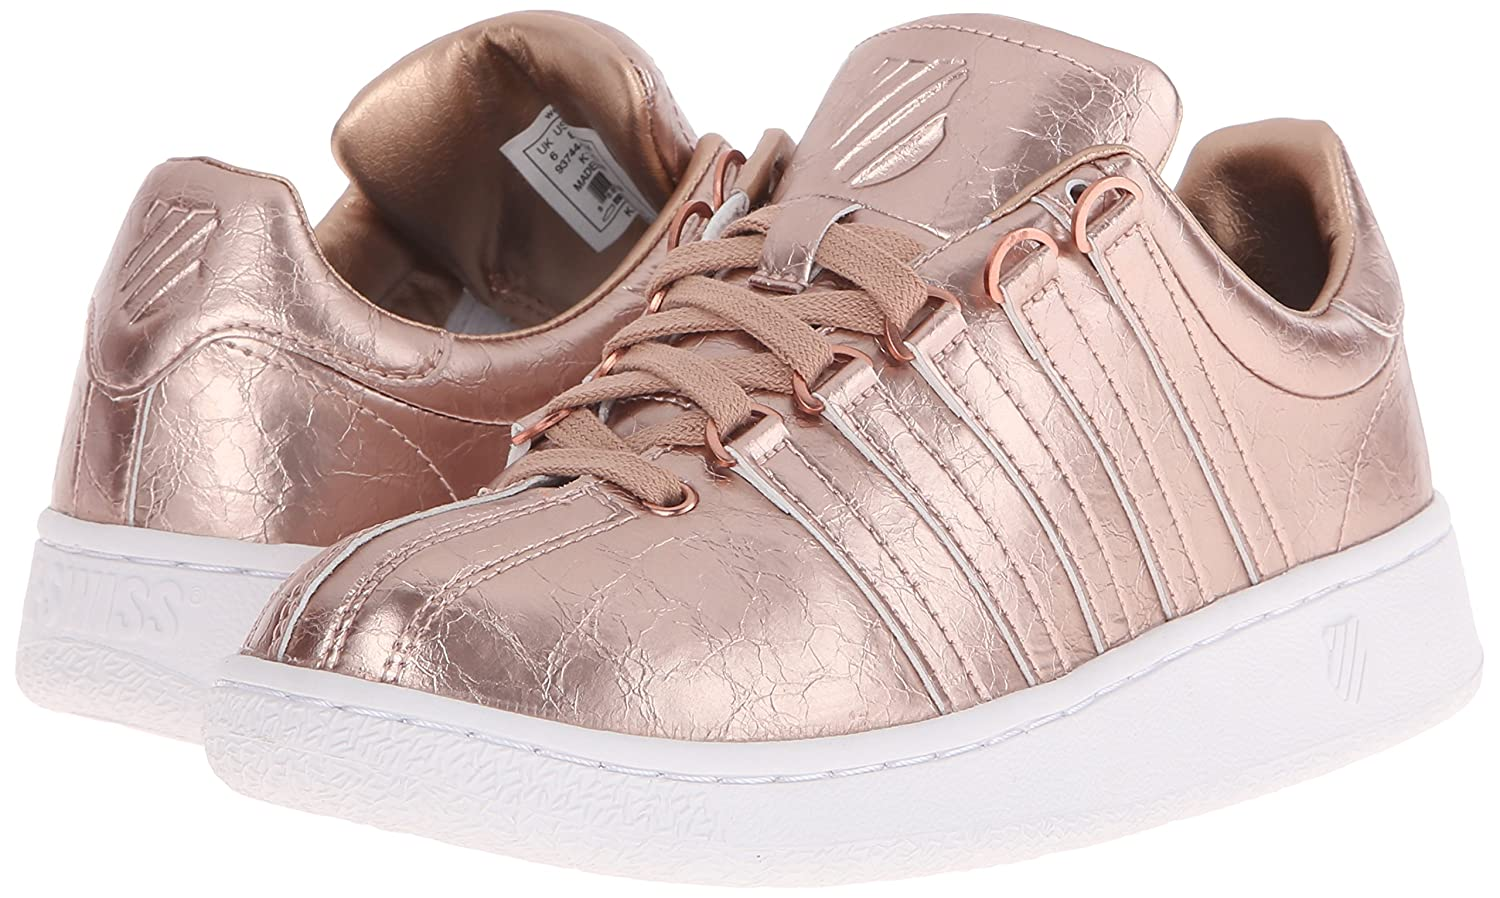 45abd99583f0 K-Swiss Women s s Classic Vn Aged Foil Low-Top Sneakers  Amazon.co.uk  Shoes    Bags